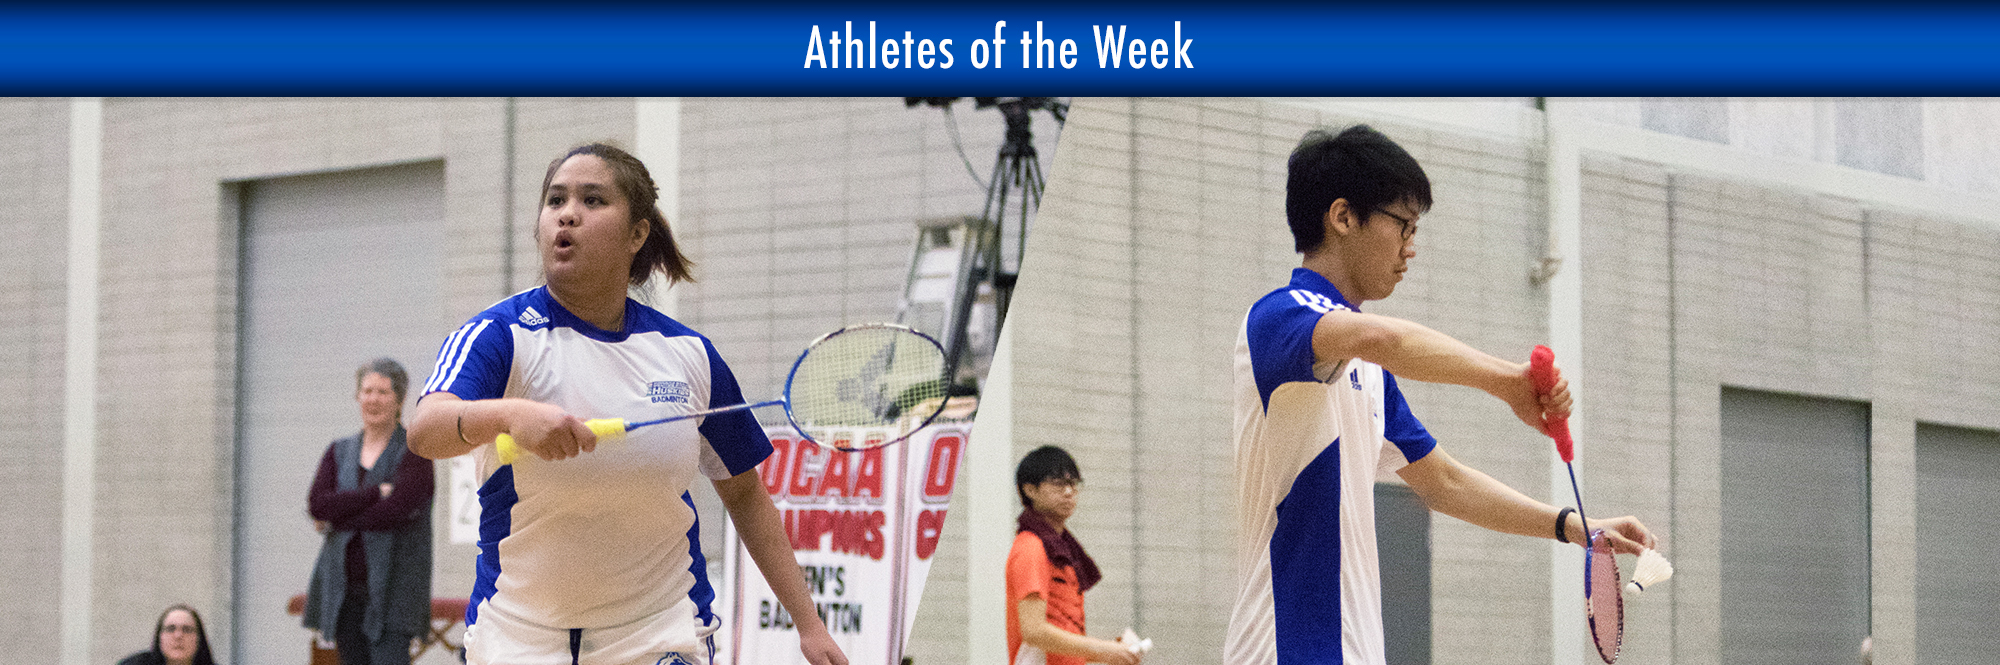 ANGELINE ALVIAR, MIKE RA NAMED HUSKIES ATHLETES OF THE WEEK AFTER TEAMING UP FOR PROVINCIAL GOLD